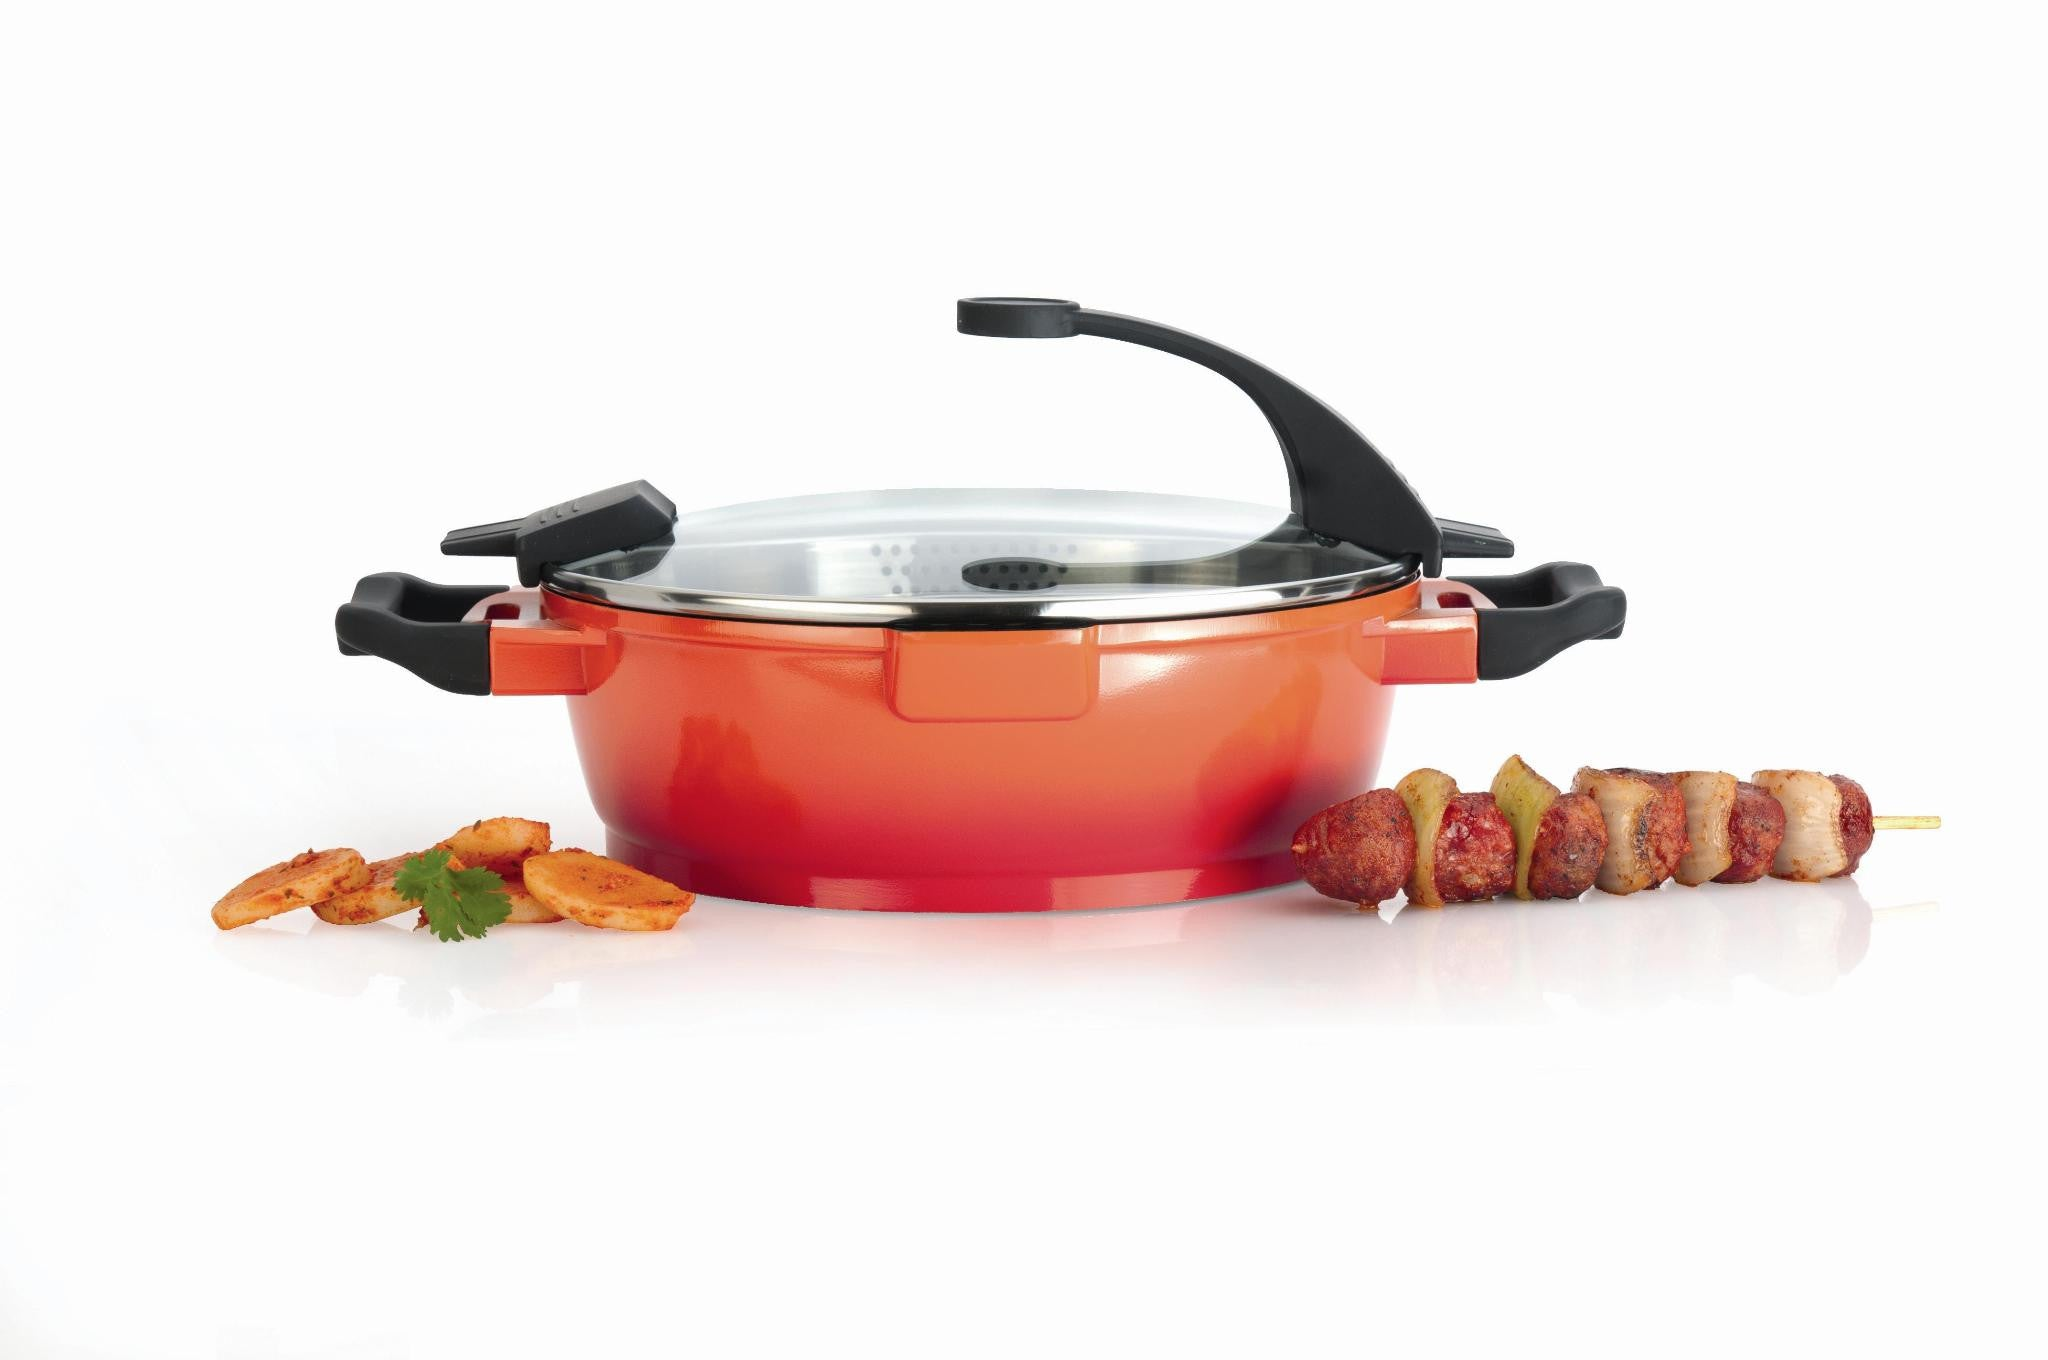 Virgo 28cm Covered 2-Handle Deep Skillet